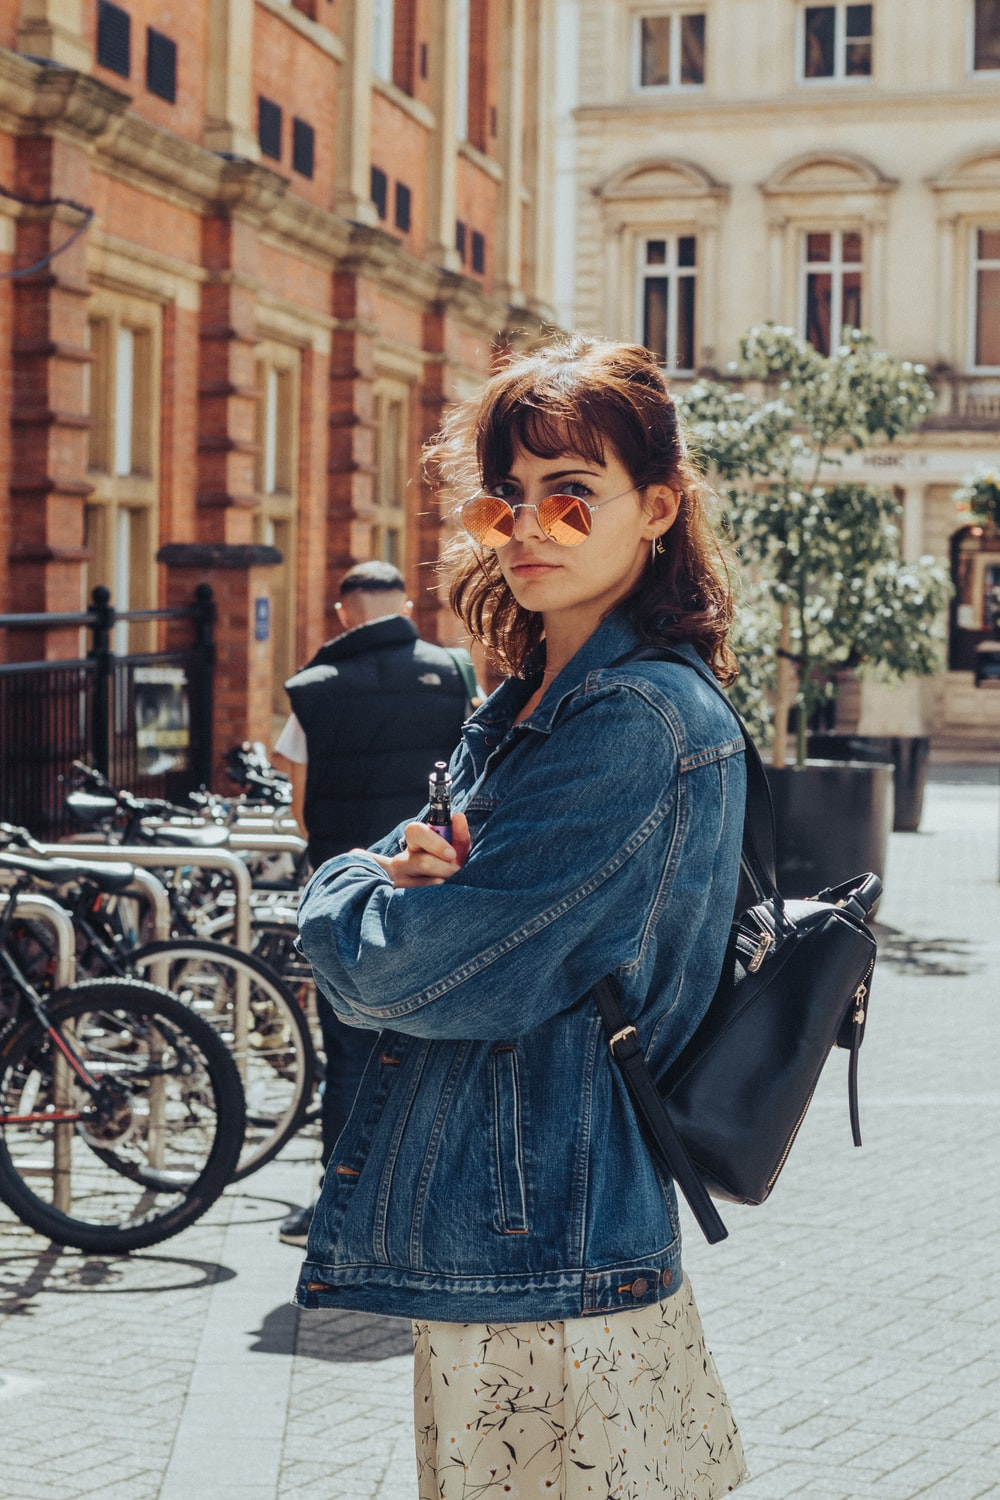 woman in blue denim jacket standing beside bicycle during daytime